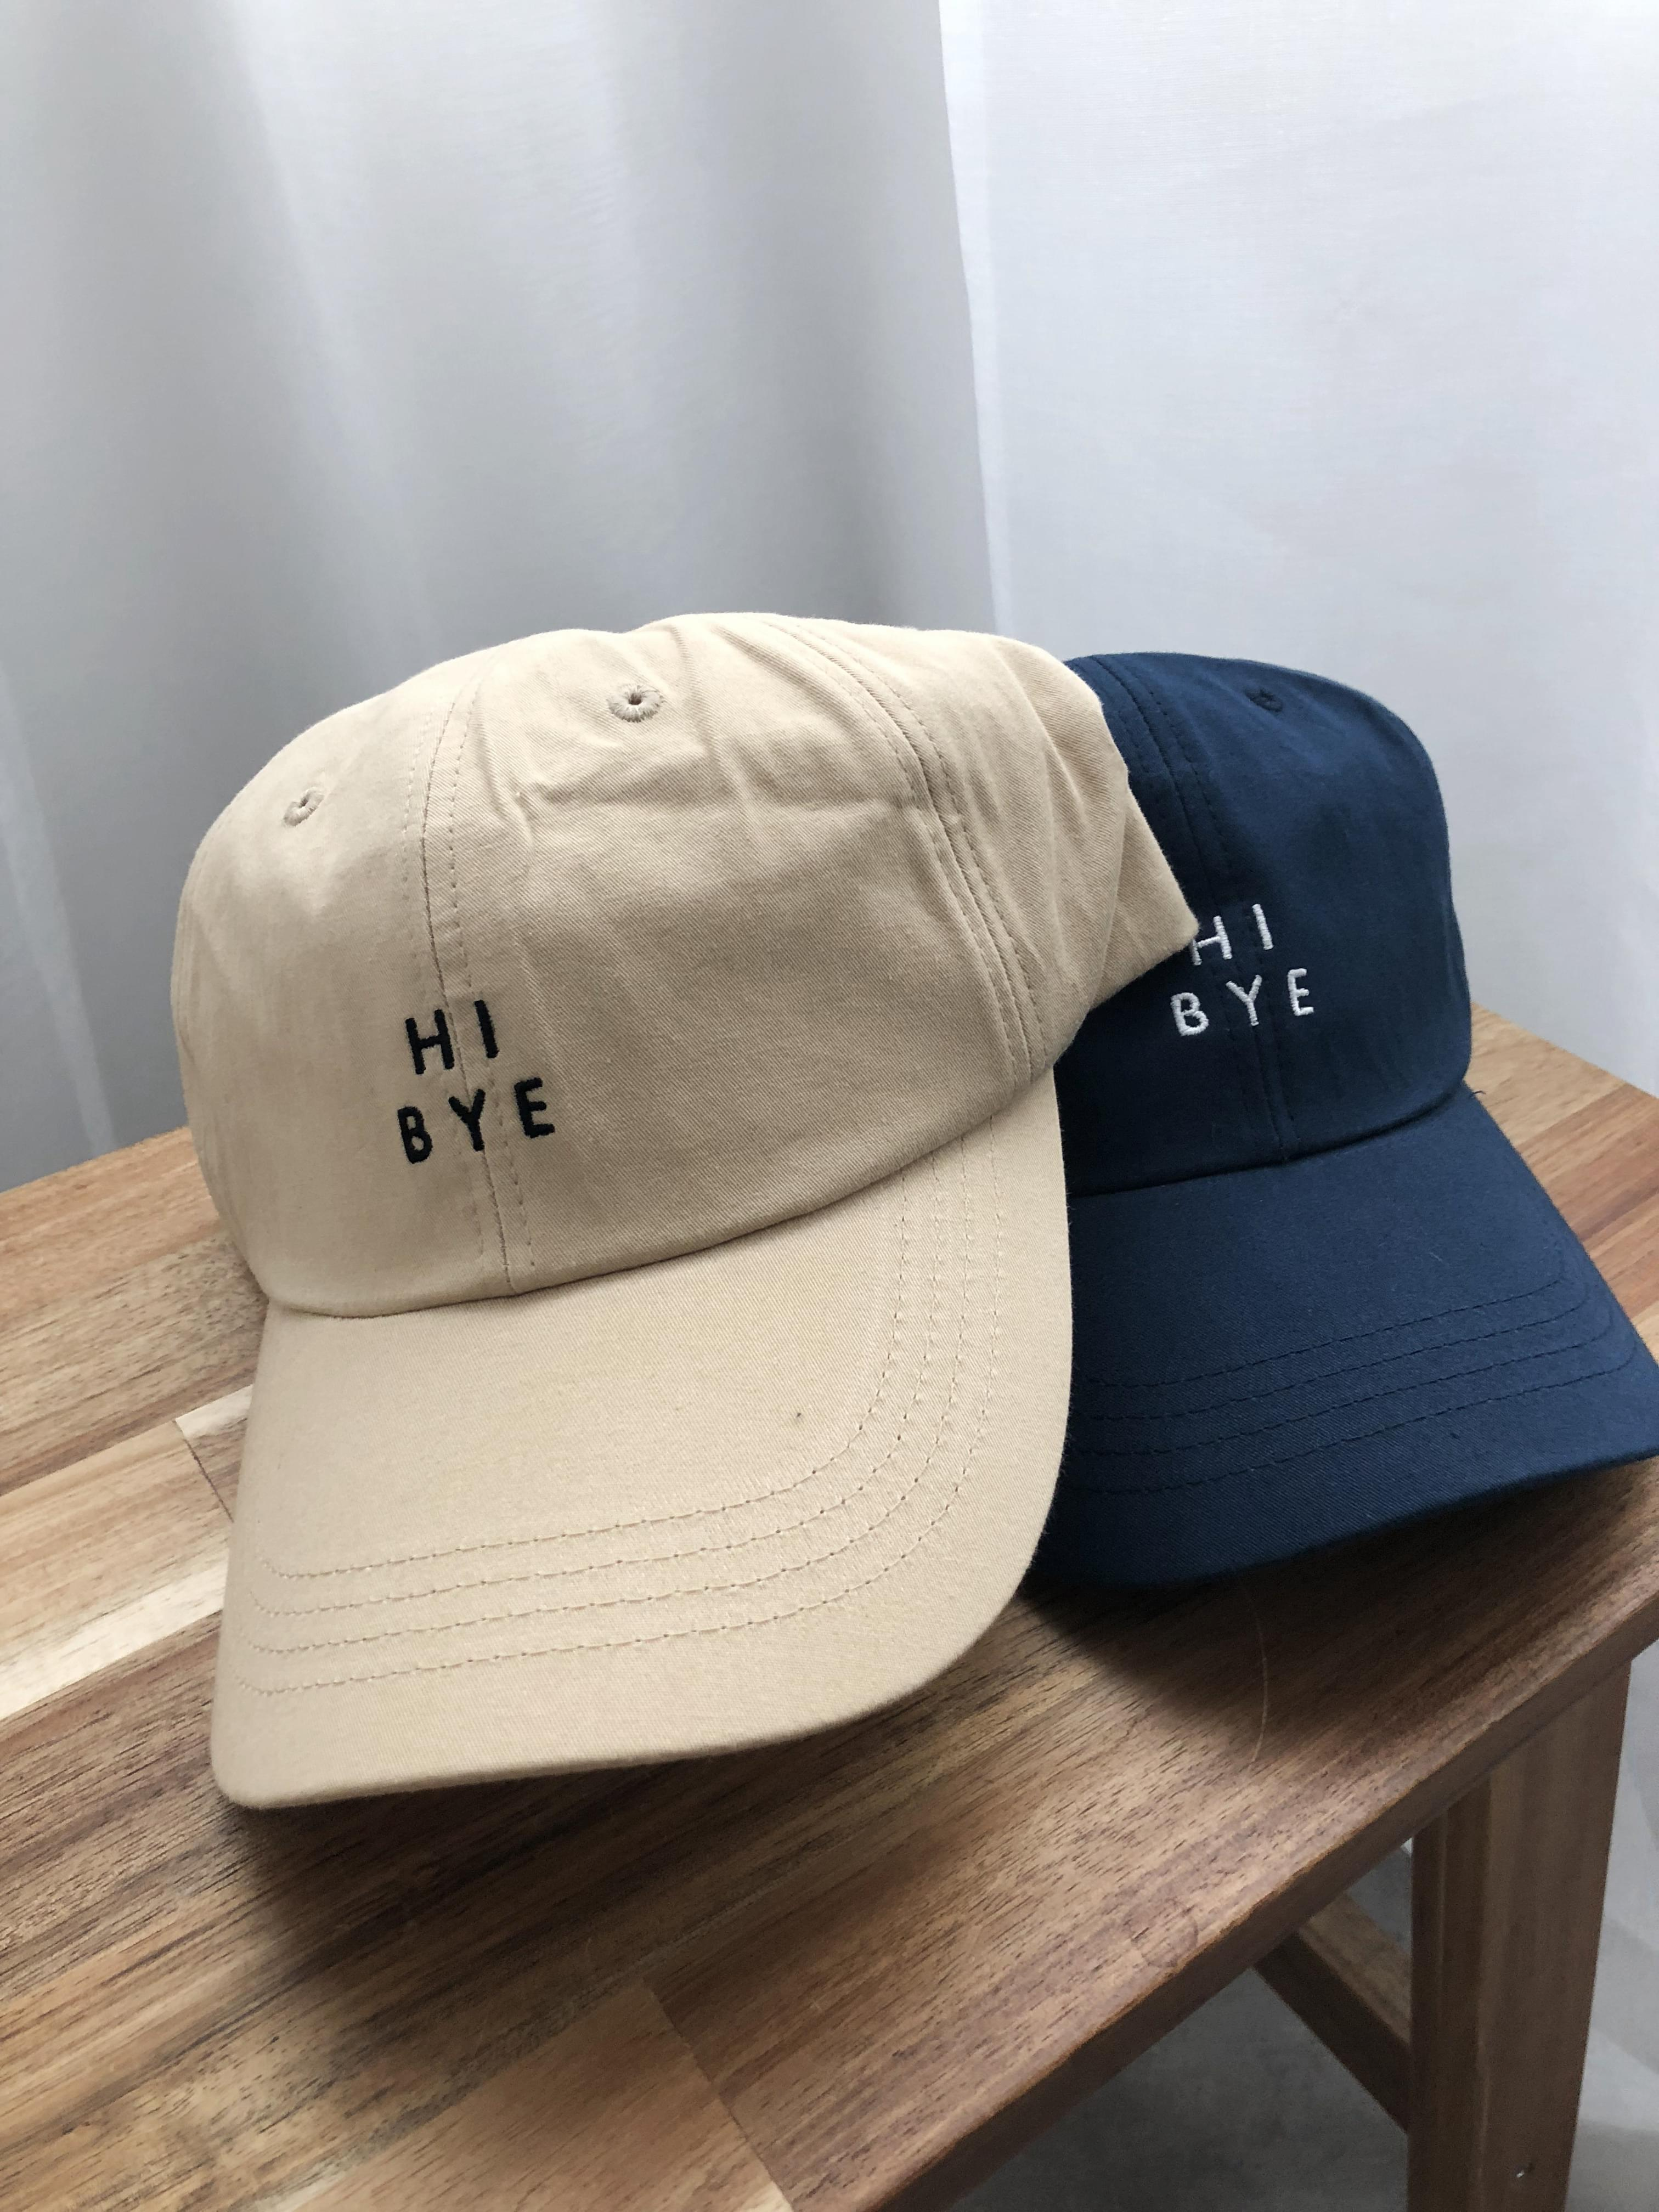 High-visibility hats